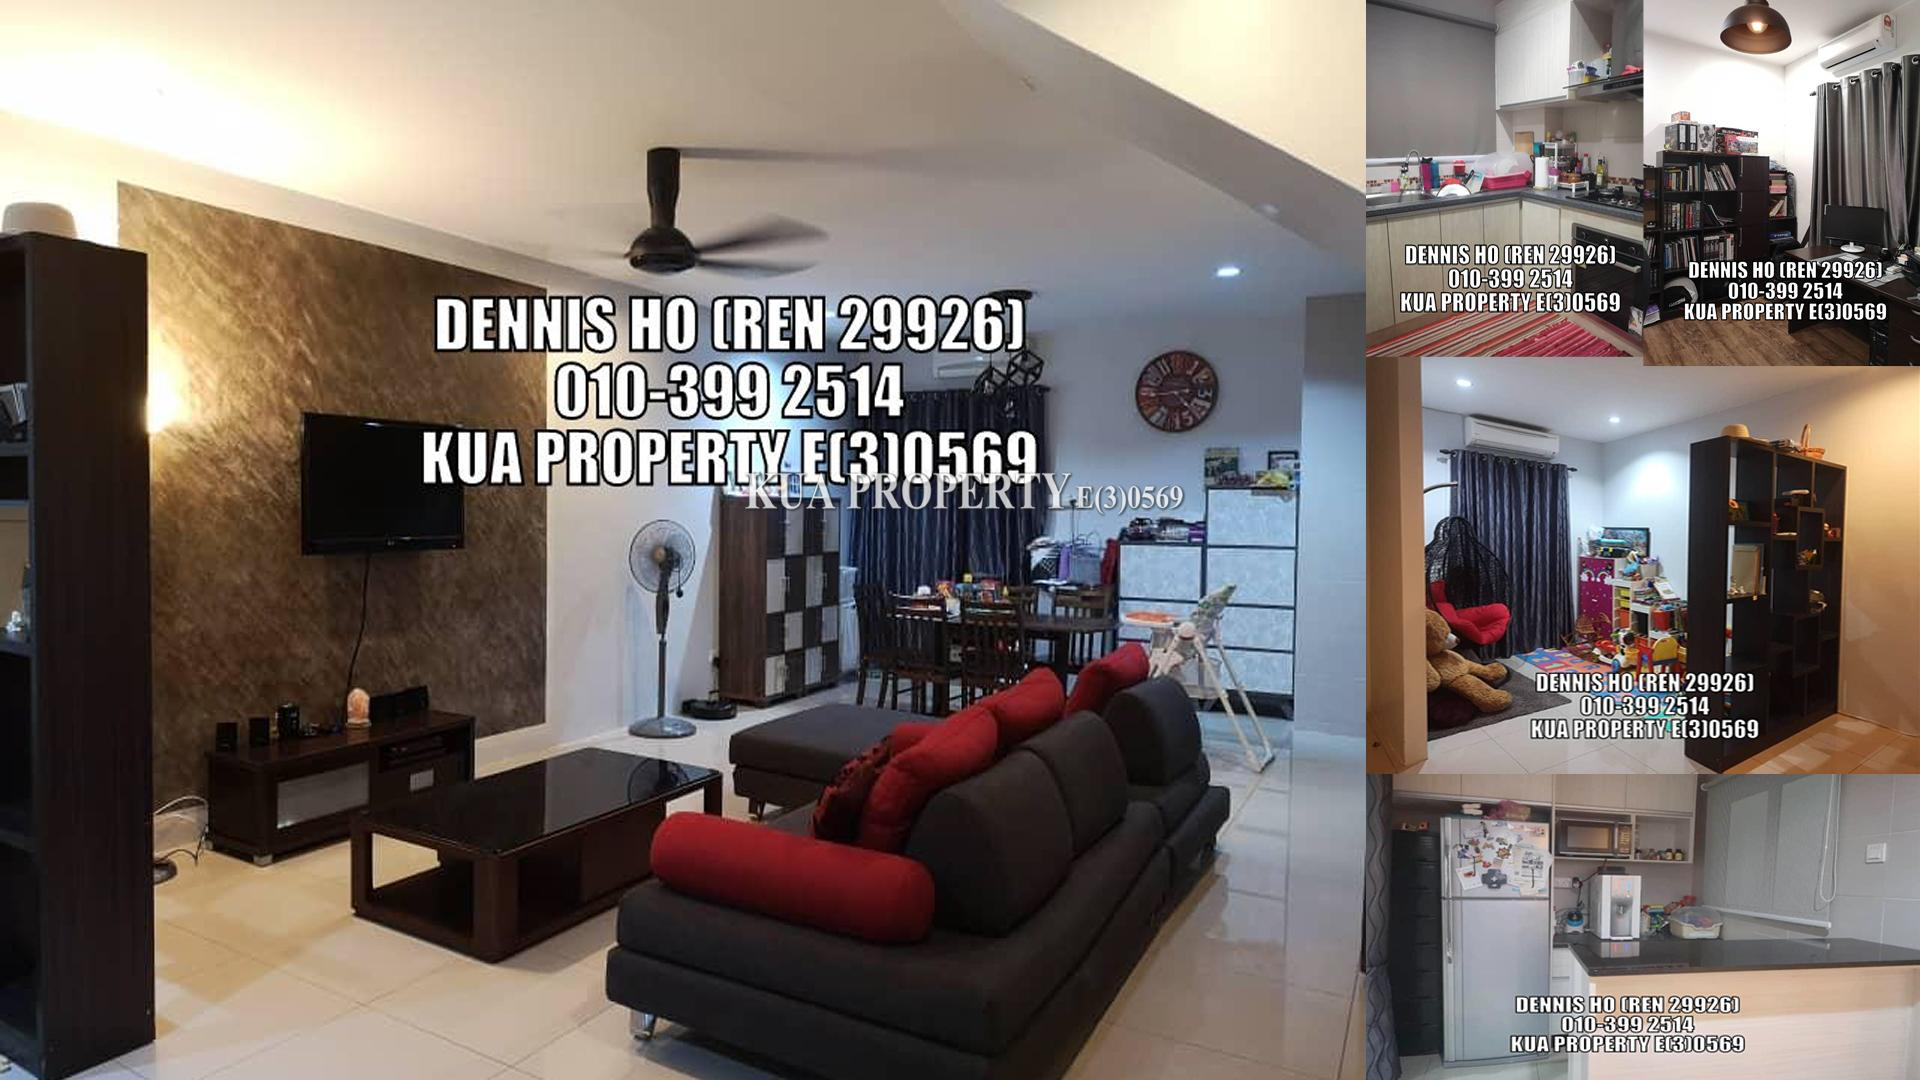 Double Storey Terrace Intermediate House For Sale! at Tabuan Tranquility Phase 4